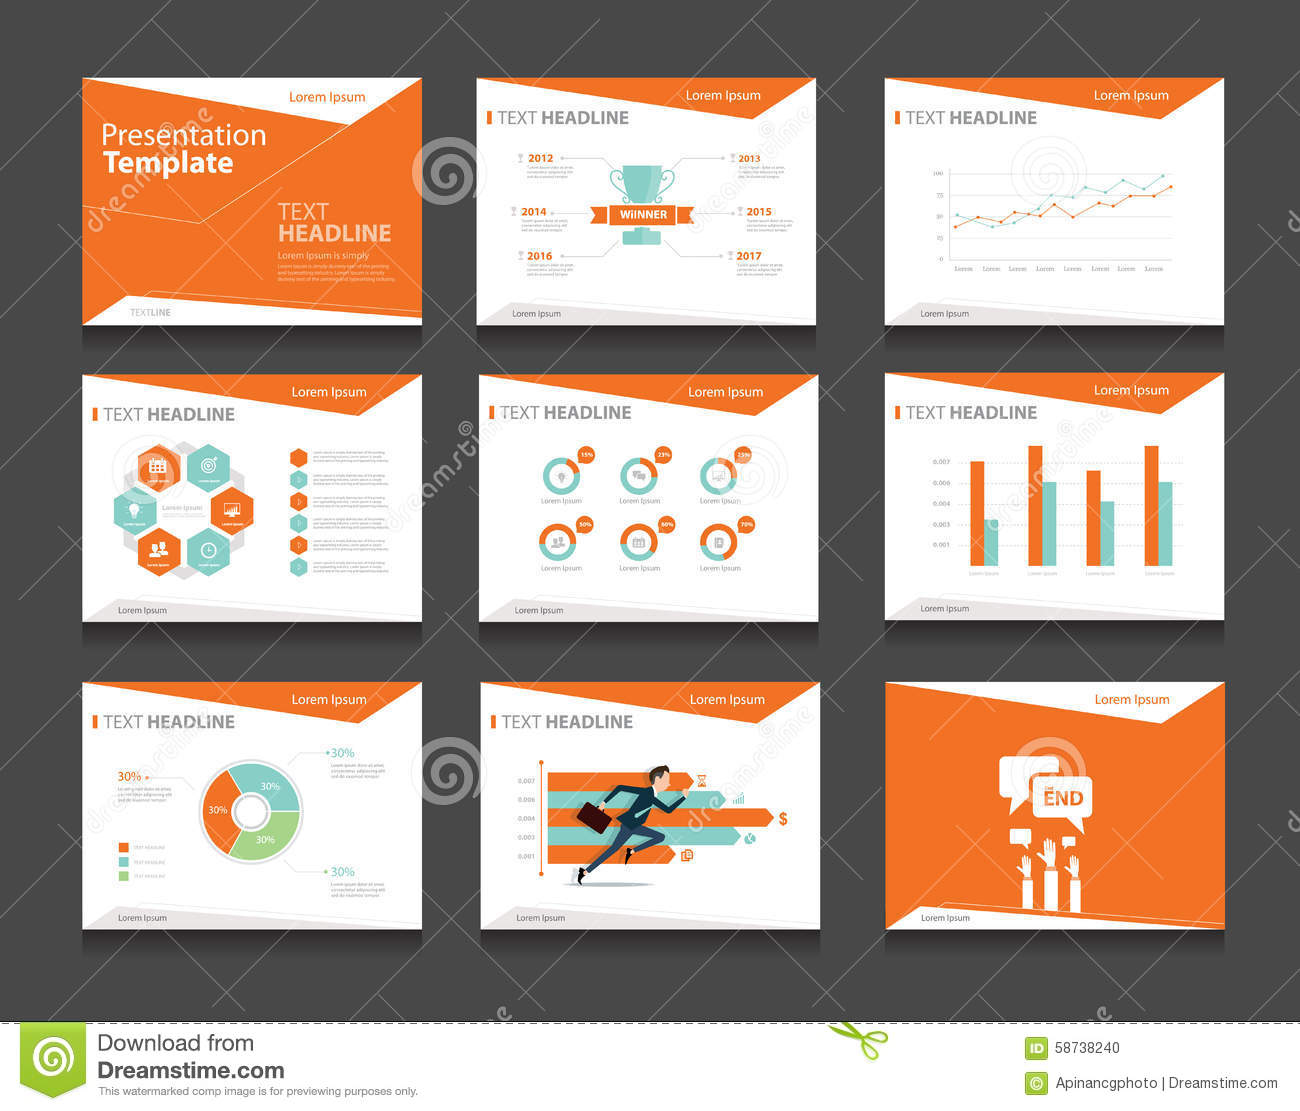 Business presentation and powerpoint template slides background orange infographic business presentation template set powerpoint template design backgrounds stock illustration cheaphphosting Gallery